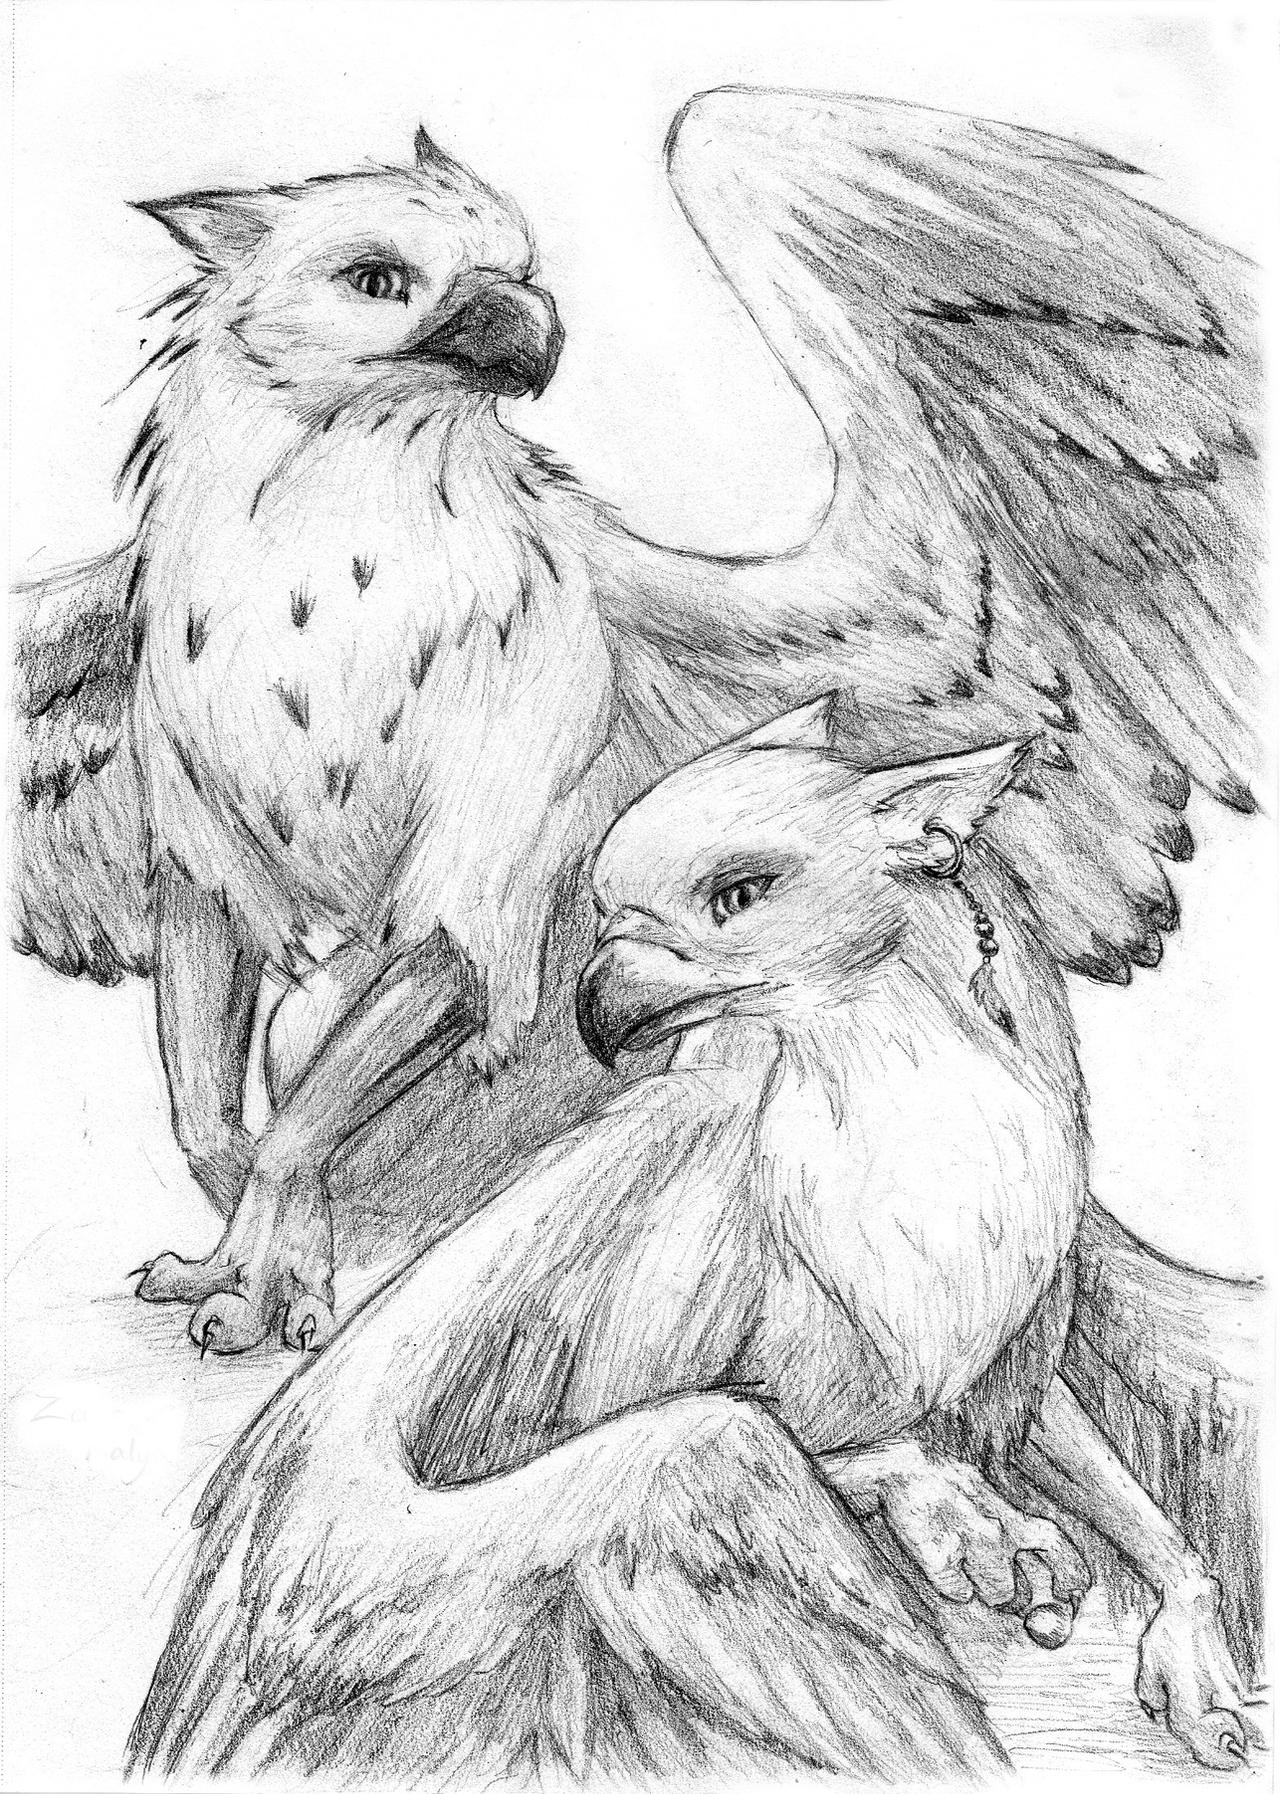 Zaer and kalya gryphon couple by gryphelyse on deviantart for Dibujos de grifos